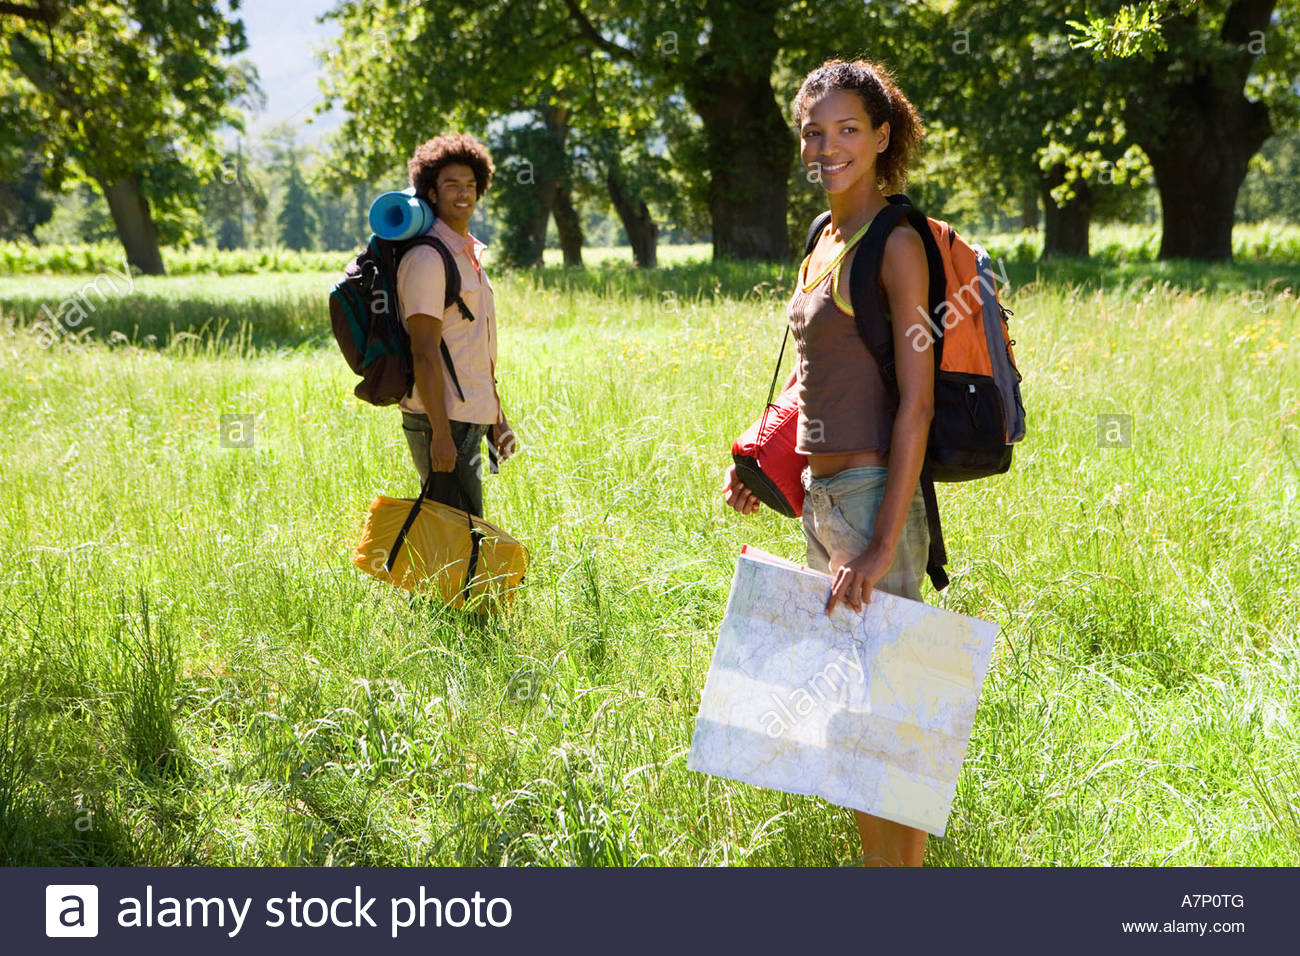 Young couple with rucksacks standing in woodland clearing departing on hiking trip woman holding map smiling portrait - Stock Image